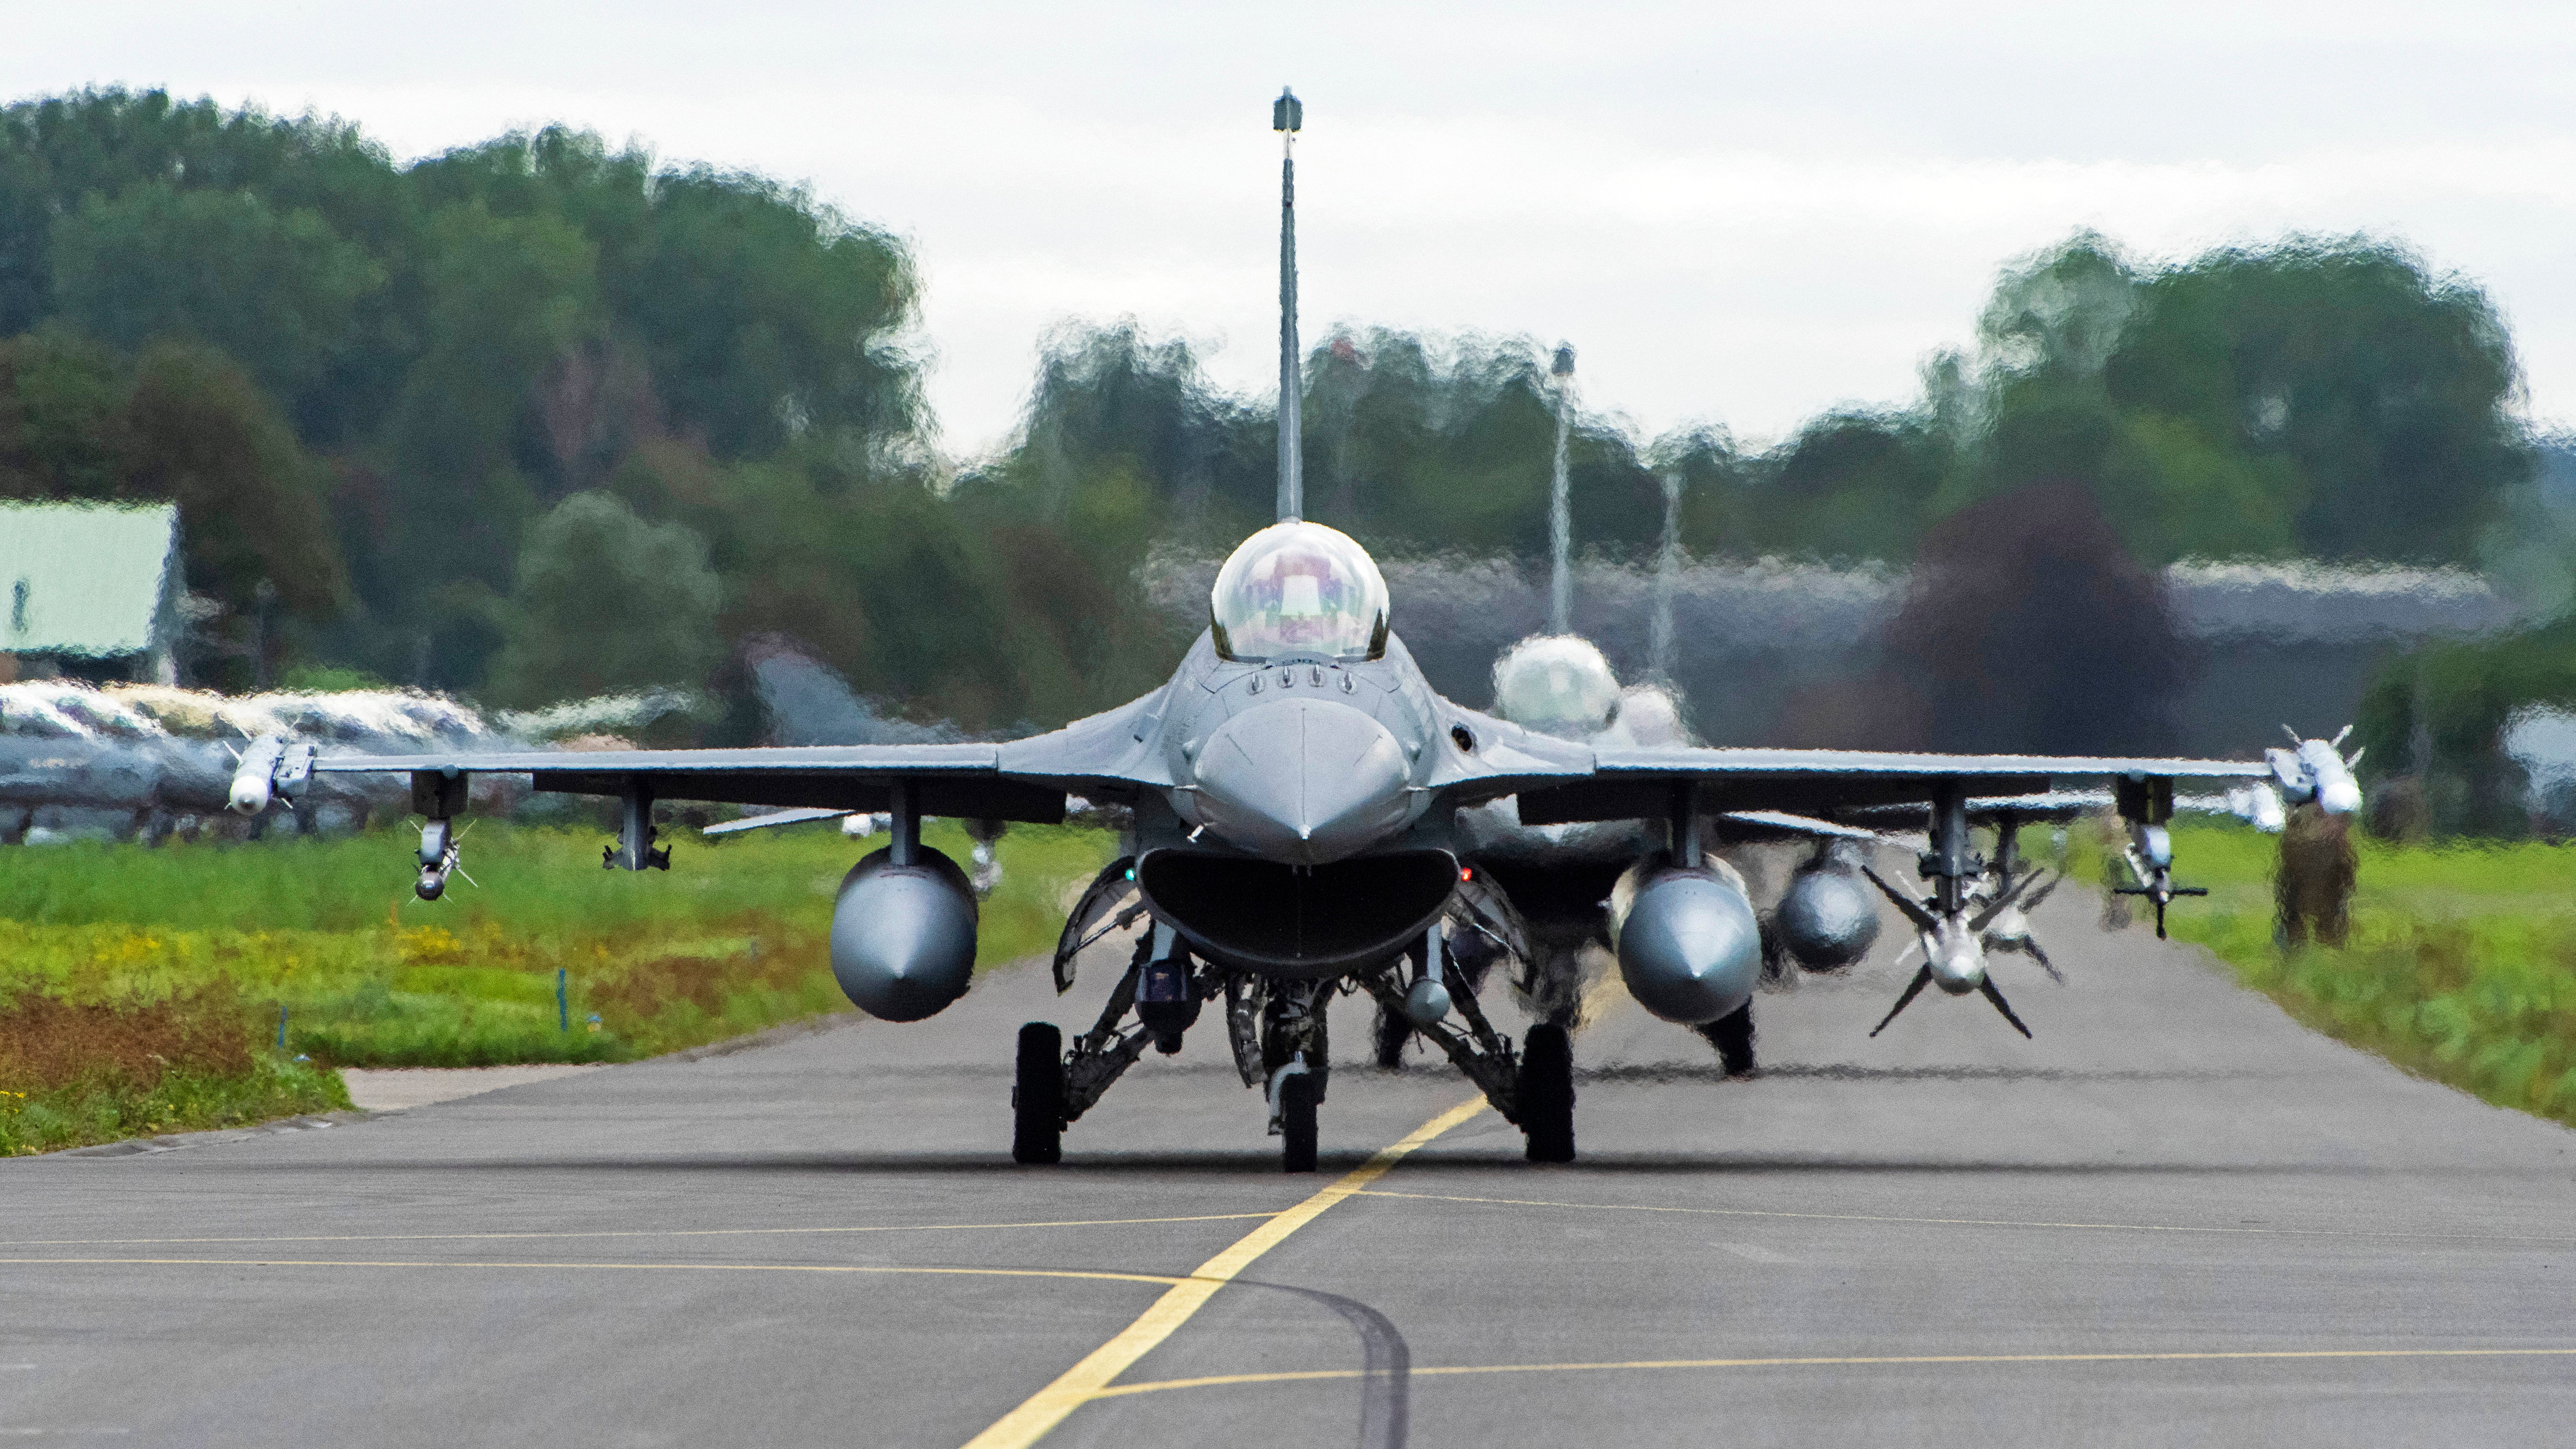 480th FS F-16C/Ds taxi by at Leeuwarden 13-09-21 [USAF/Tech Sgt Anthony Plyler]